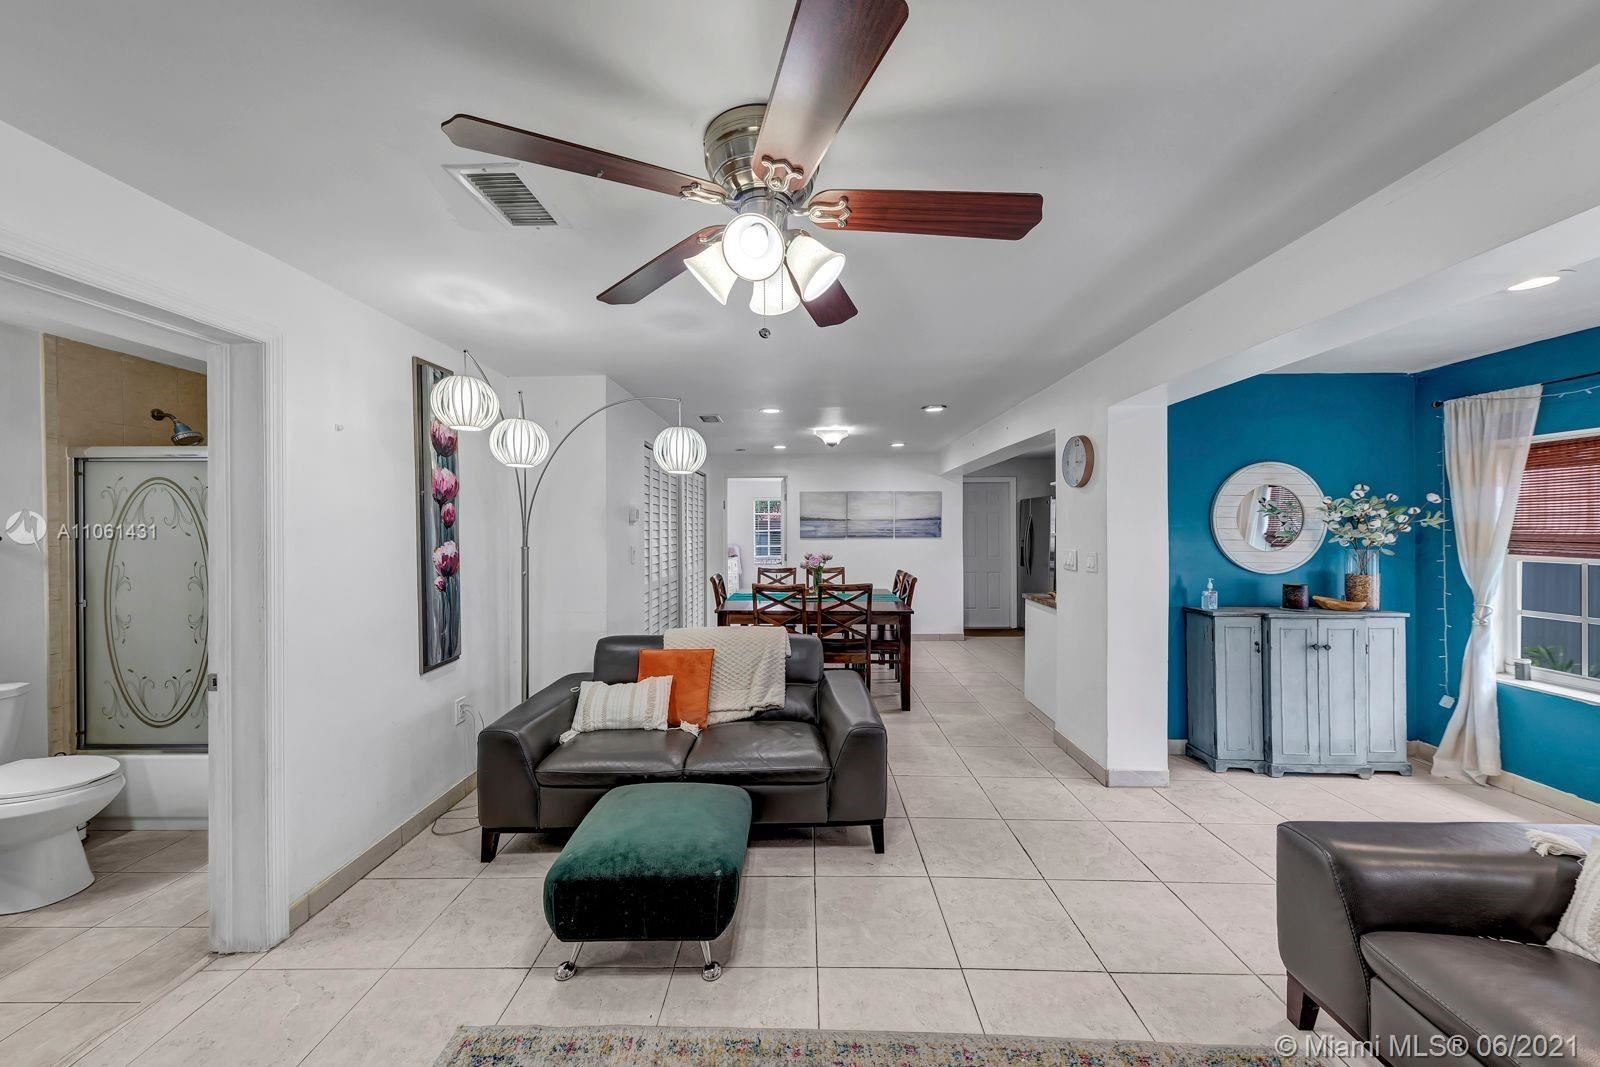 Photo of 1021 SW 66th Ave, West Miami, FL 33144 (MLS # A11061431)